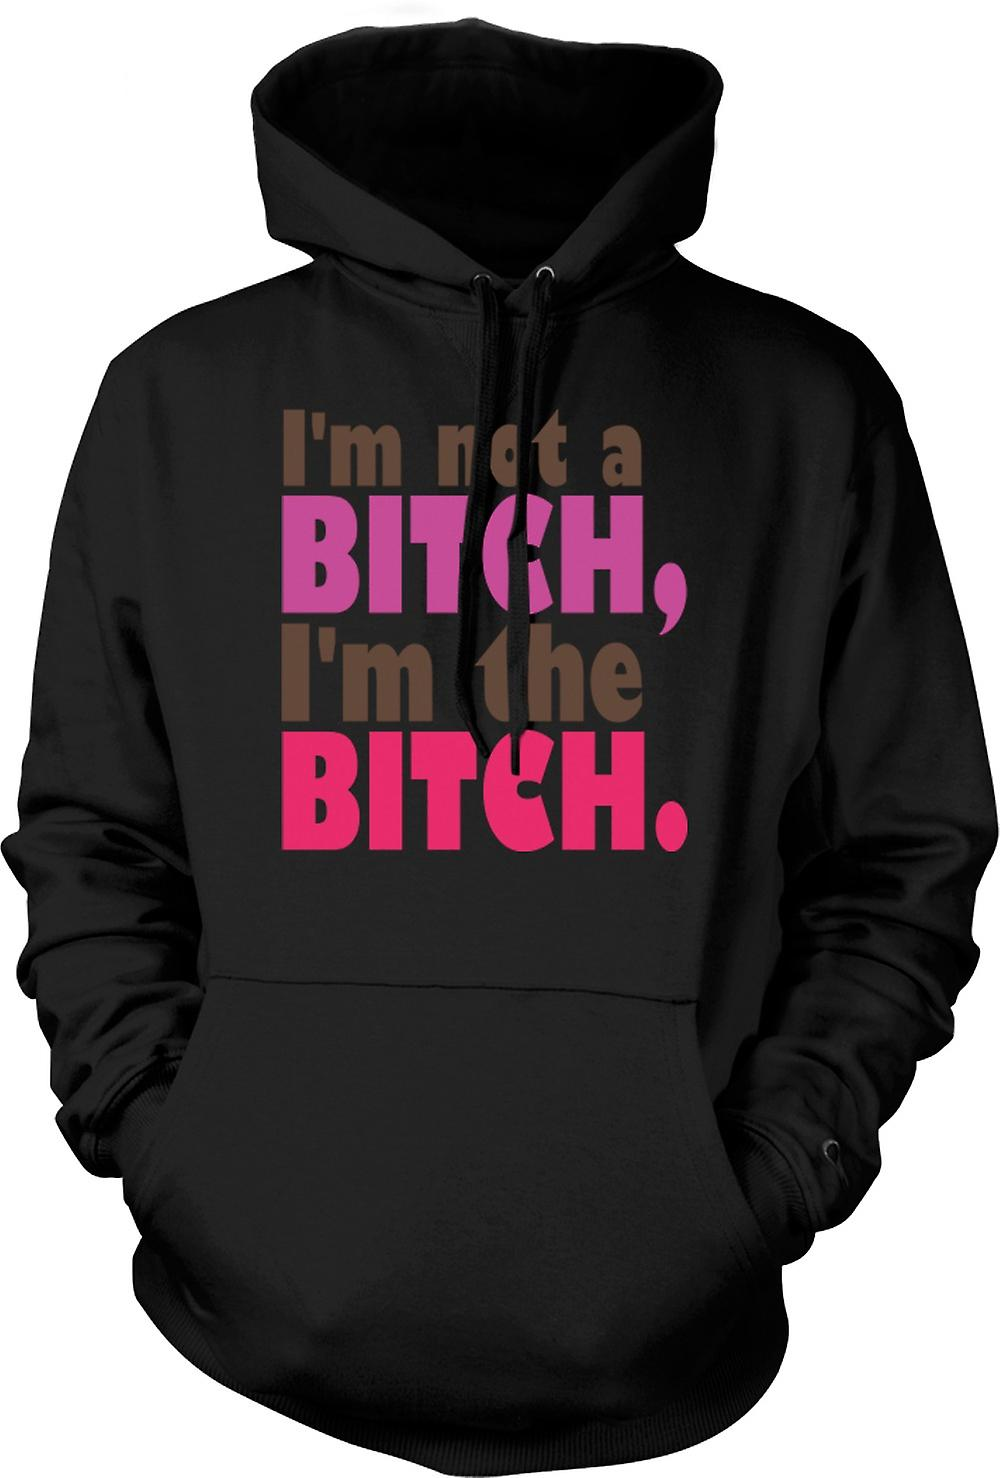 Kids Hoodie - I'm Not A Bitch, I'm The Bitch - Quote